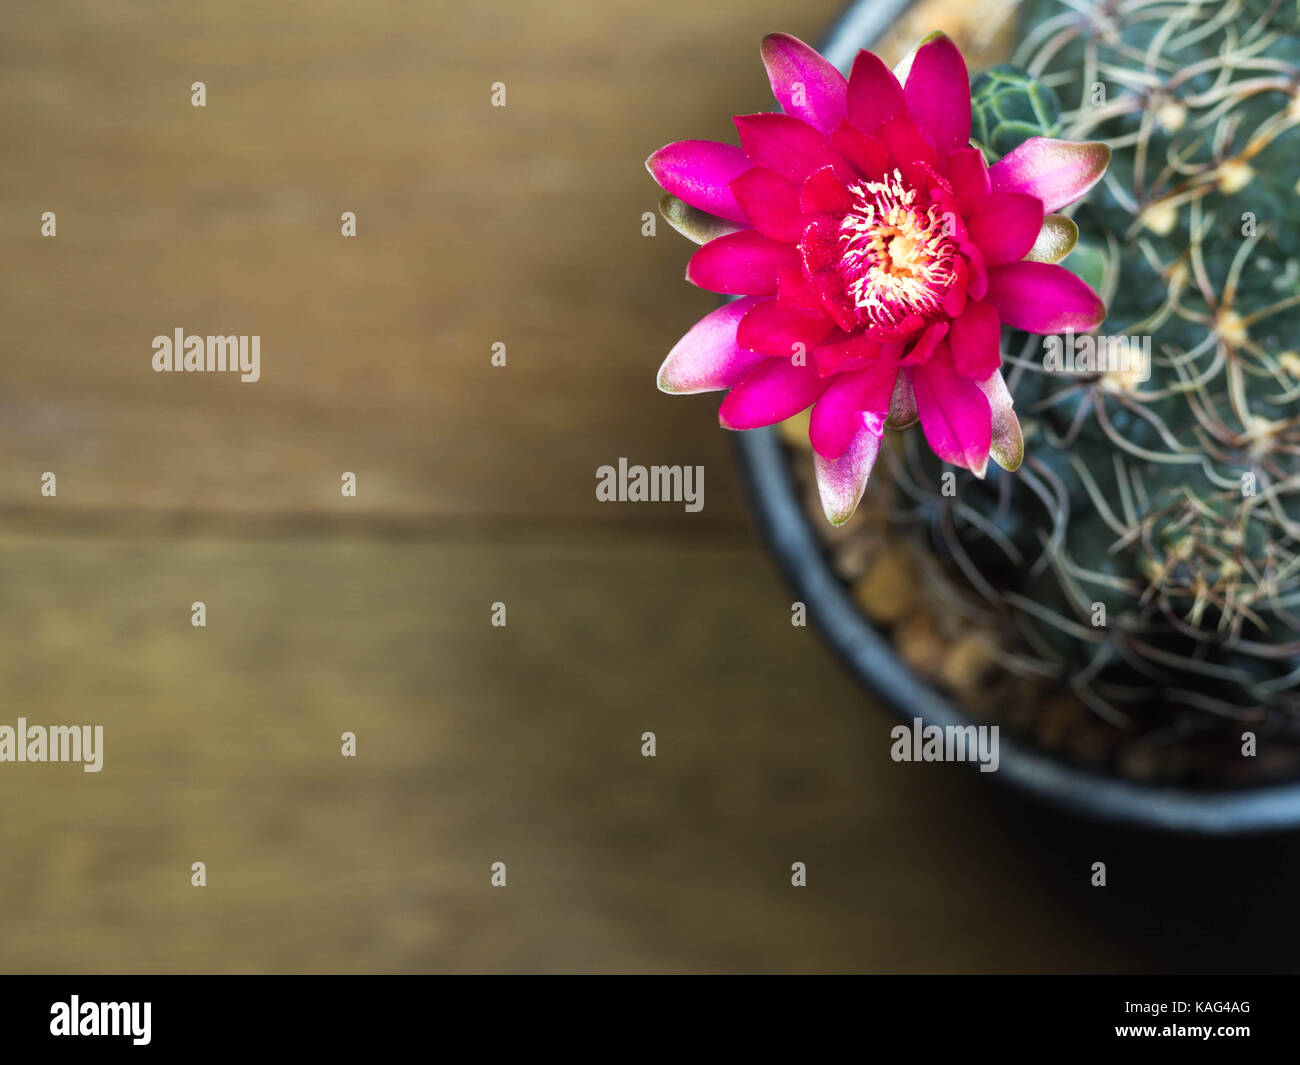 Top View Of Pink Cactus Flower On The Wooden Table Have Copy Space